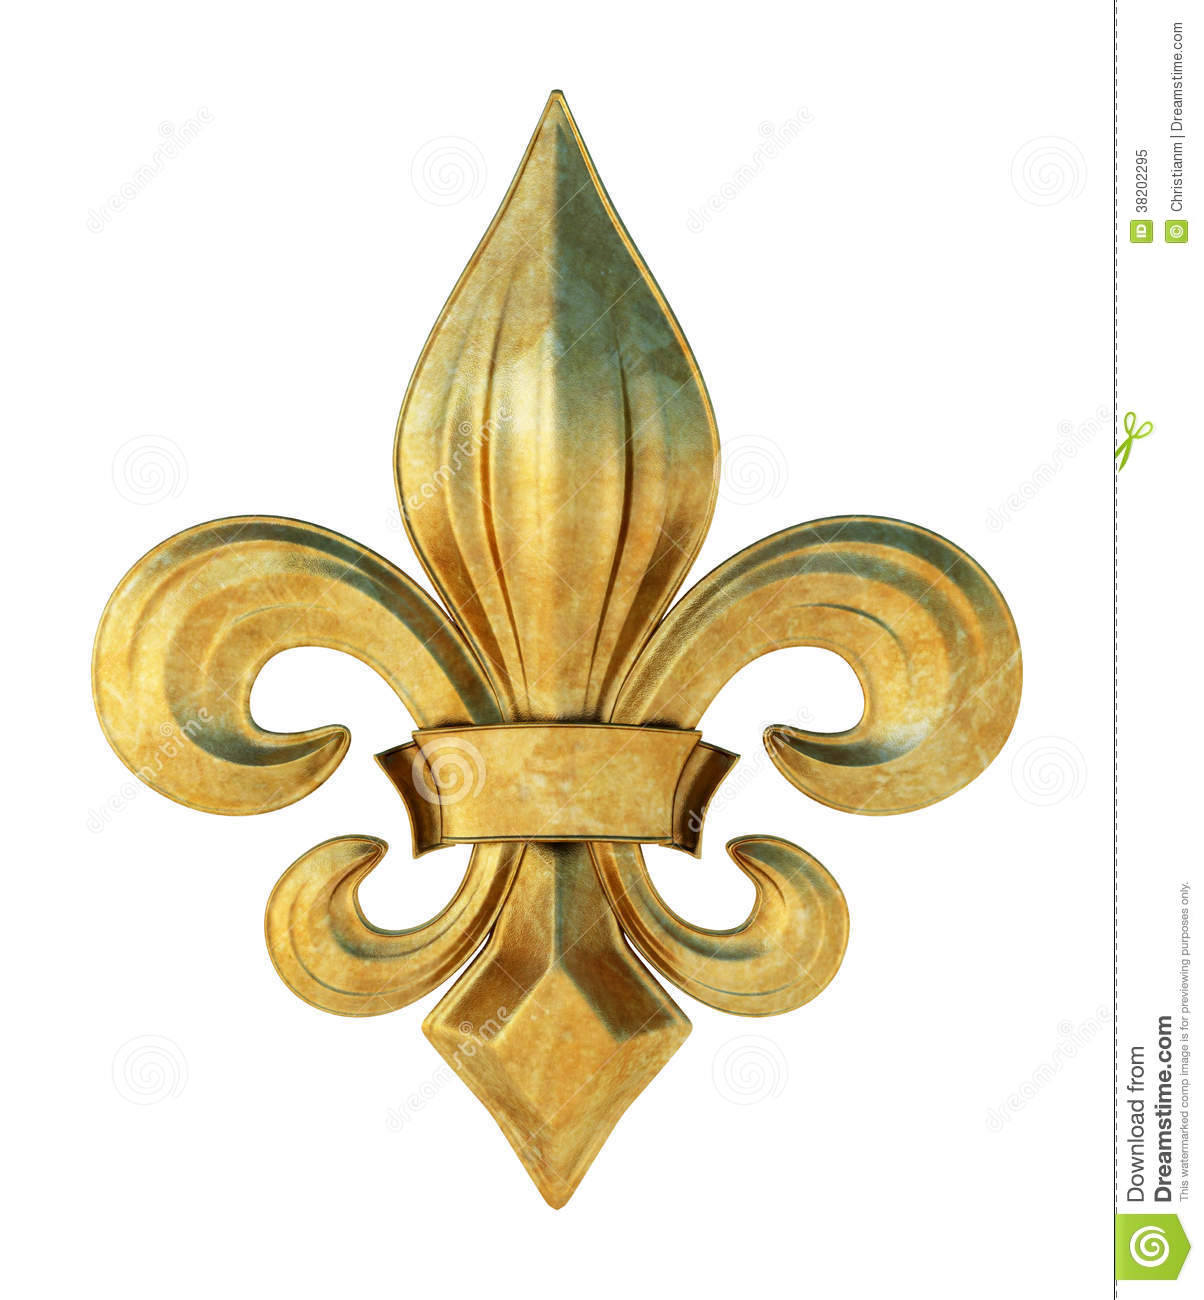 Fleur De Lis Royalty Free Stock Photo - Image: 38202295